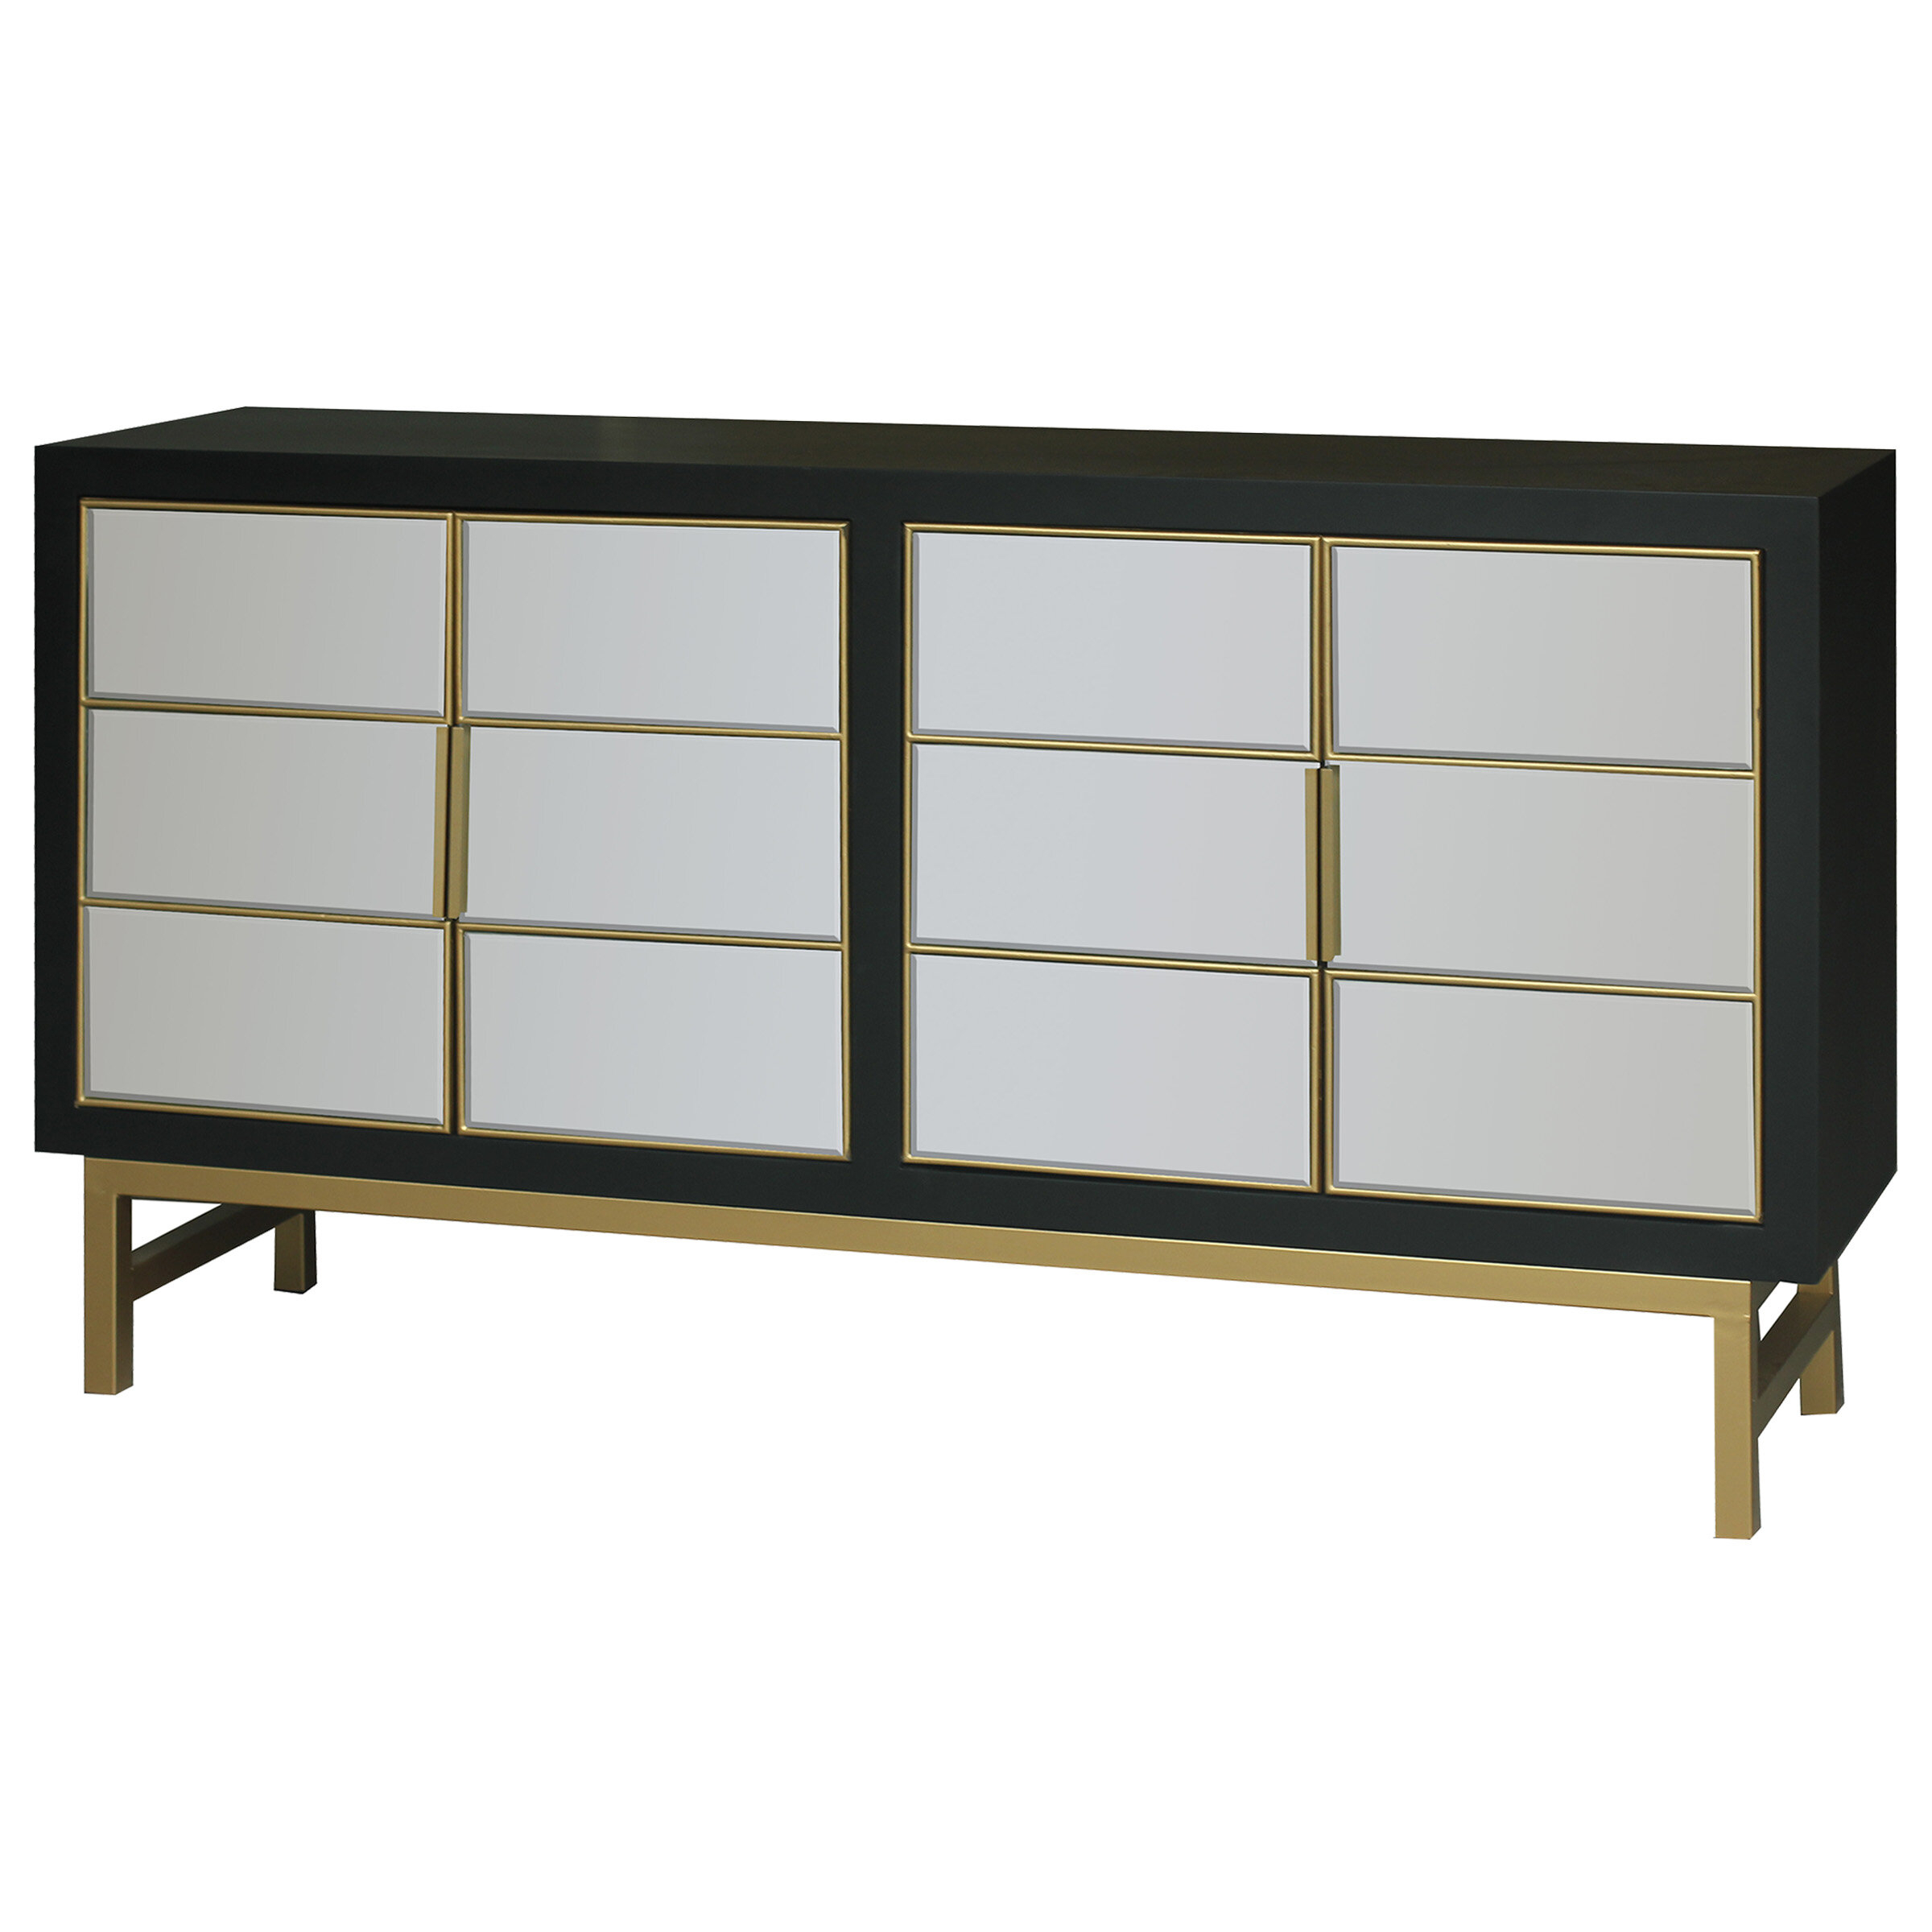 Modern & Contemporary Kieth 4 Door Credenza | Allmodern intended for Senda Credenzas (Image 22 of 30)